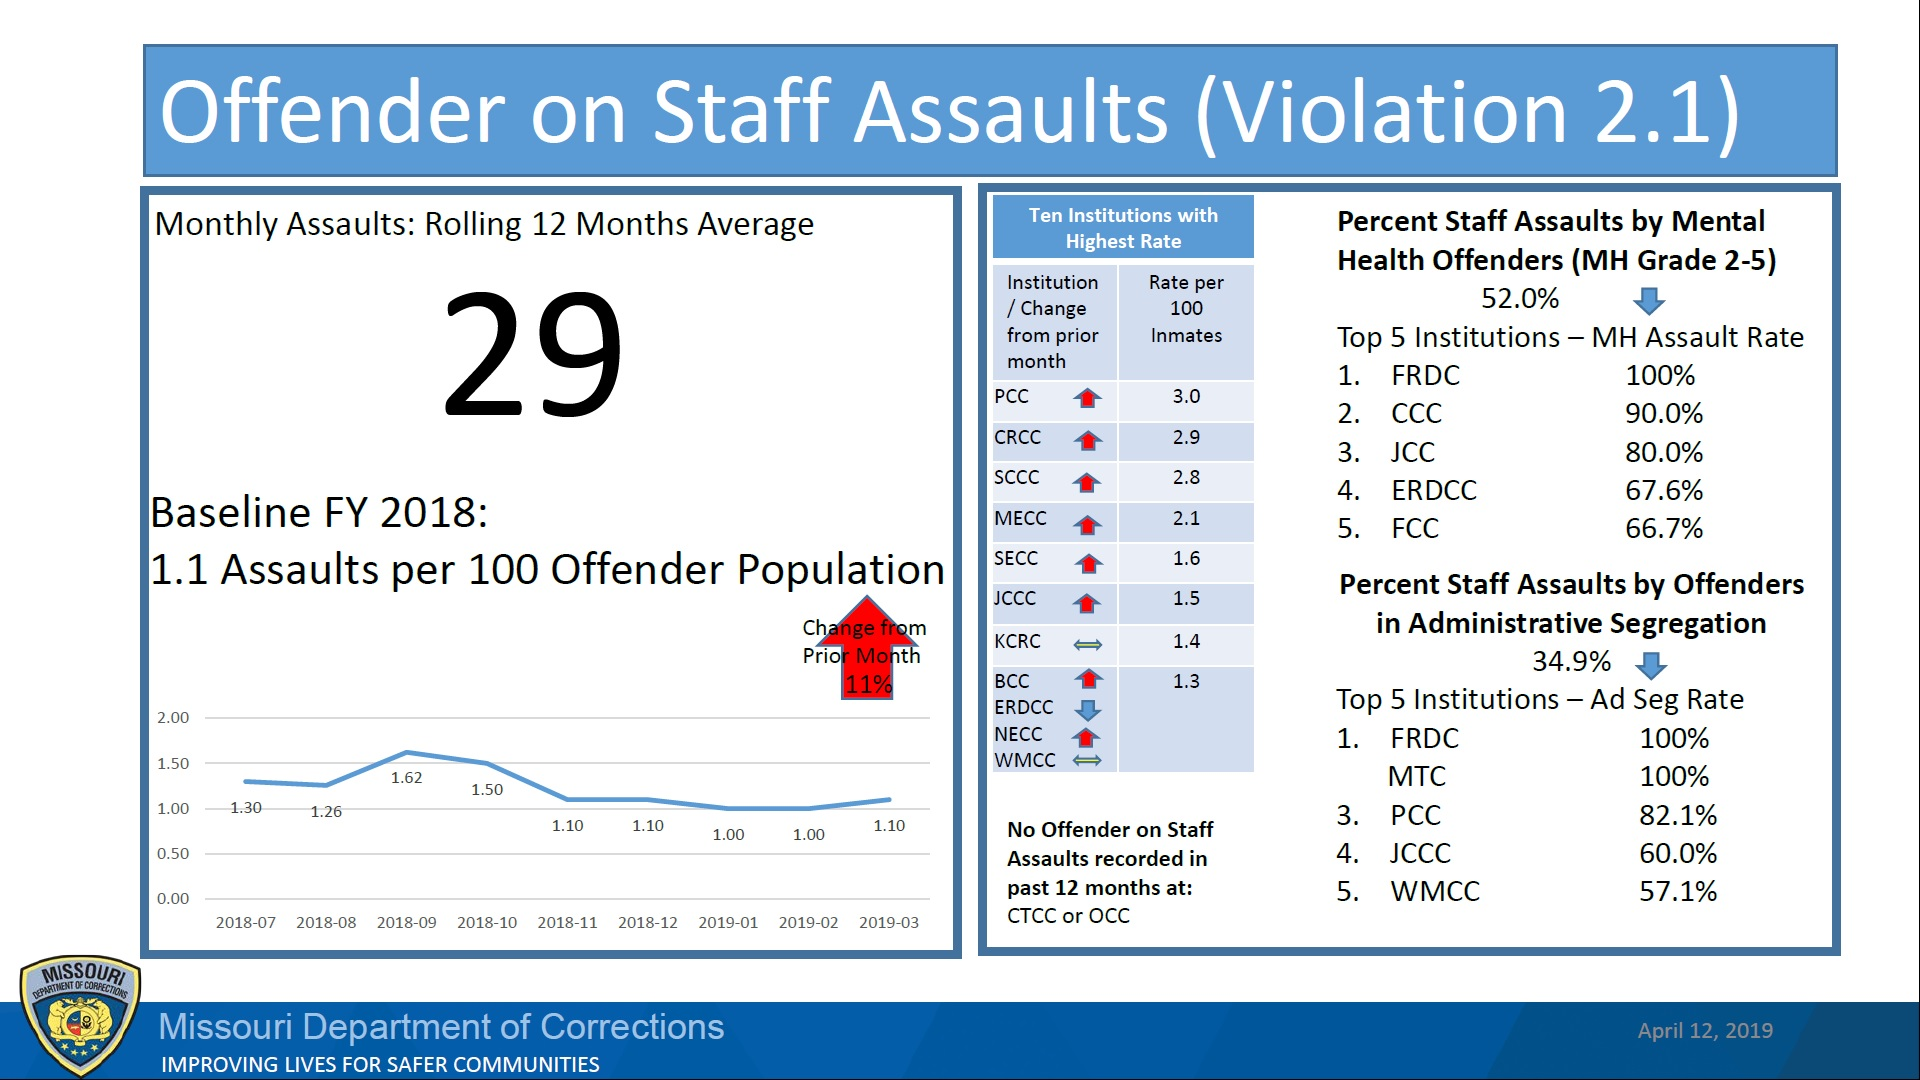 Graph showing rise and fall of assault rates. Monthly assaults rolling 12-month average is 29.